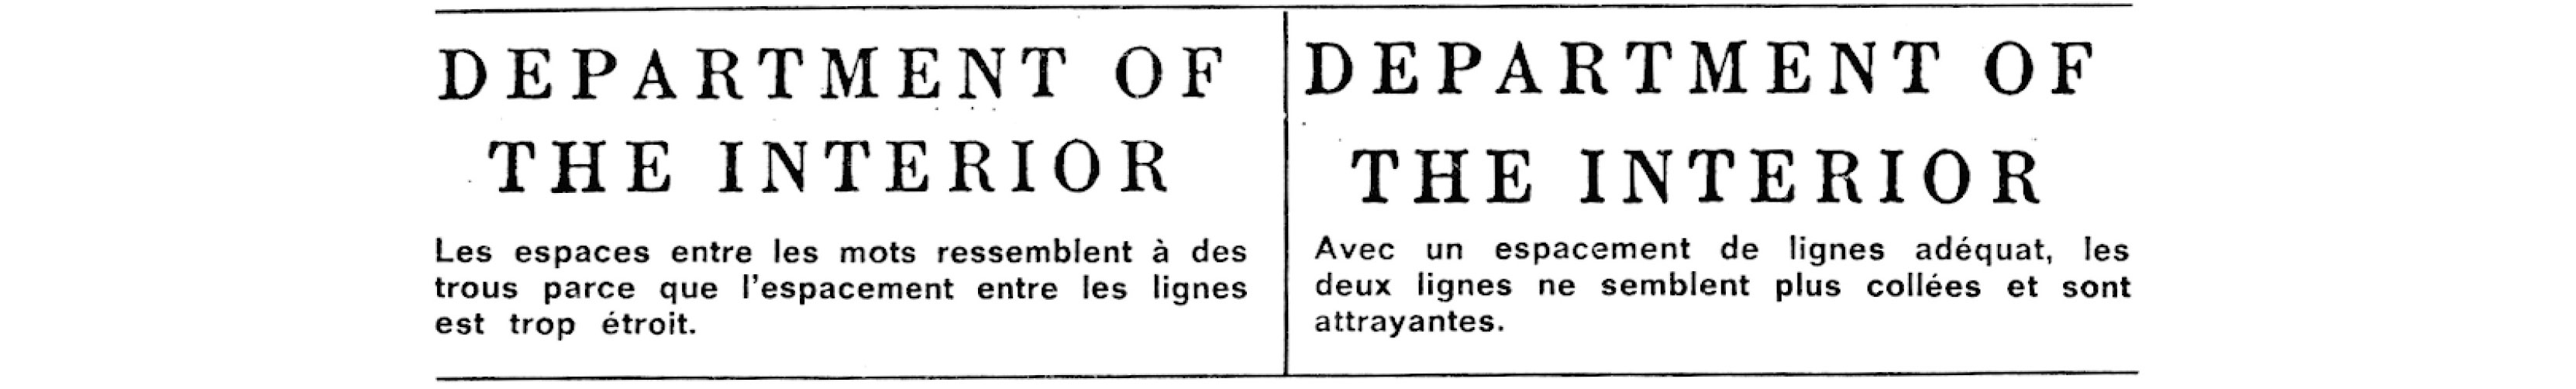 Jan-Tschichold-te-parle-de-typographie-article-Persee-communication-et-langages-1985-schema-04